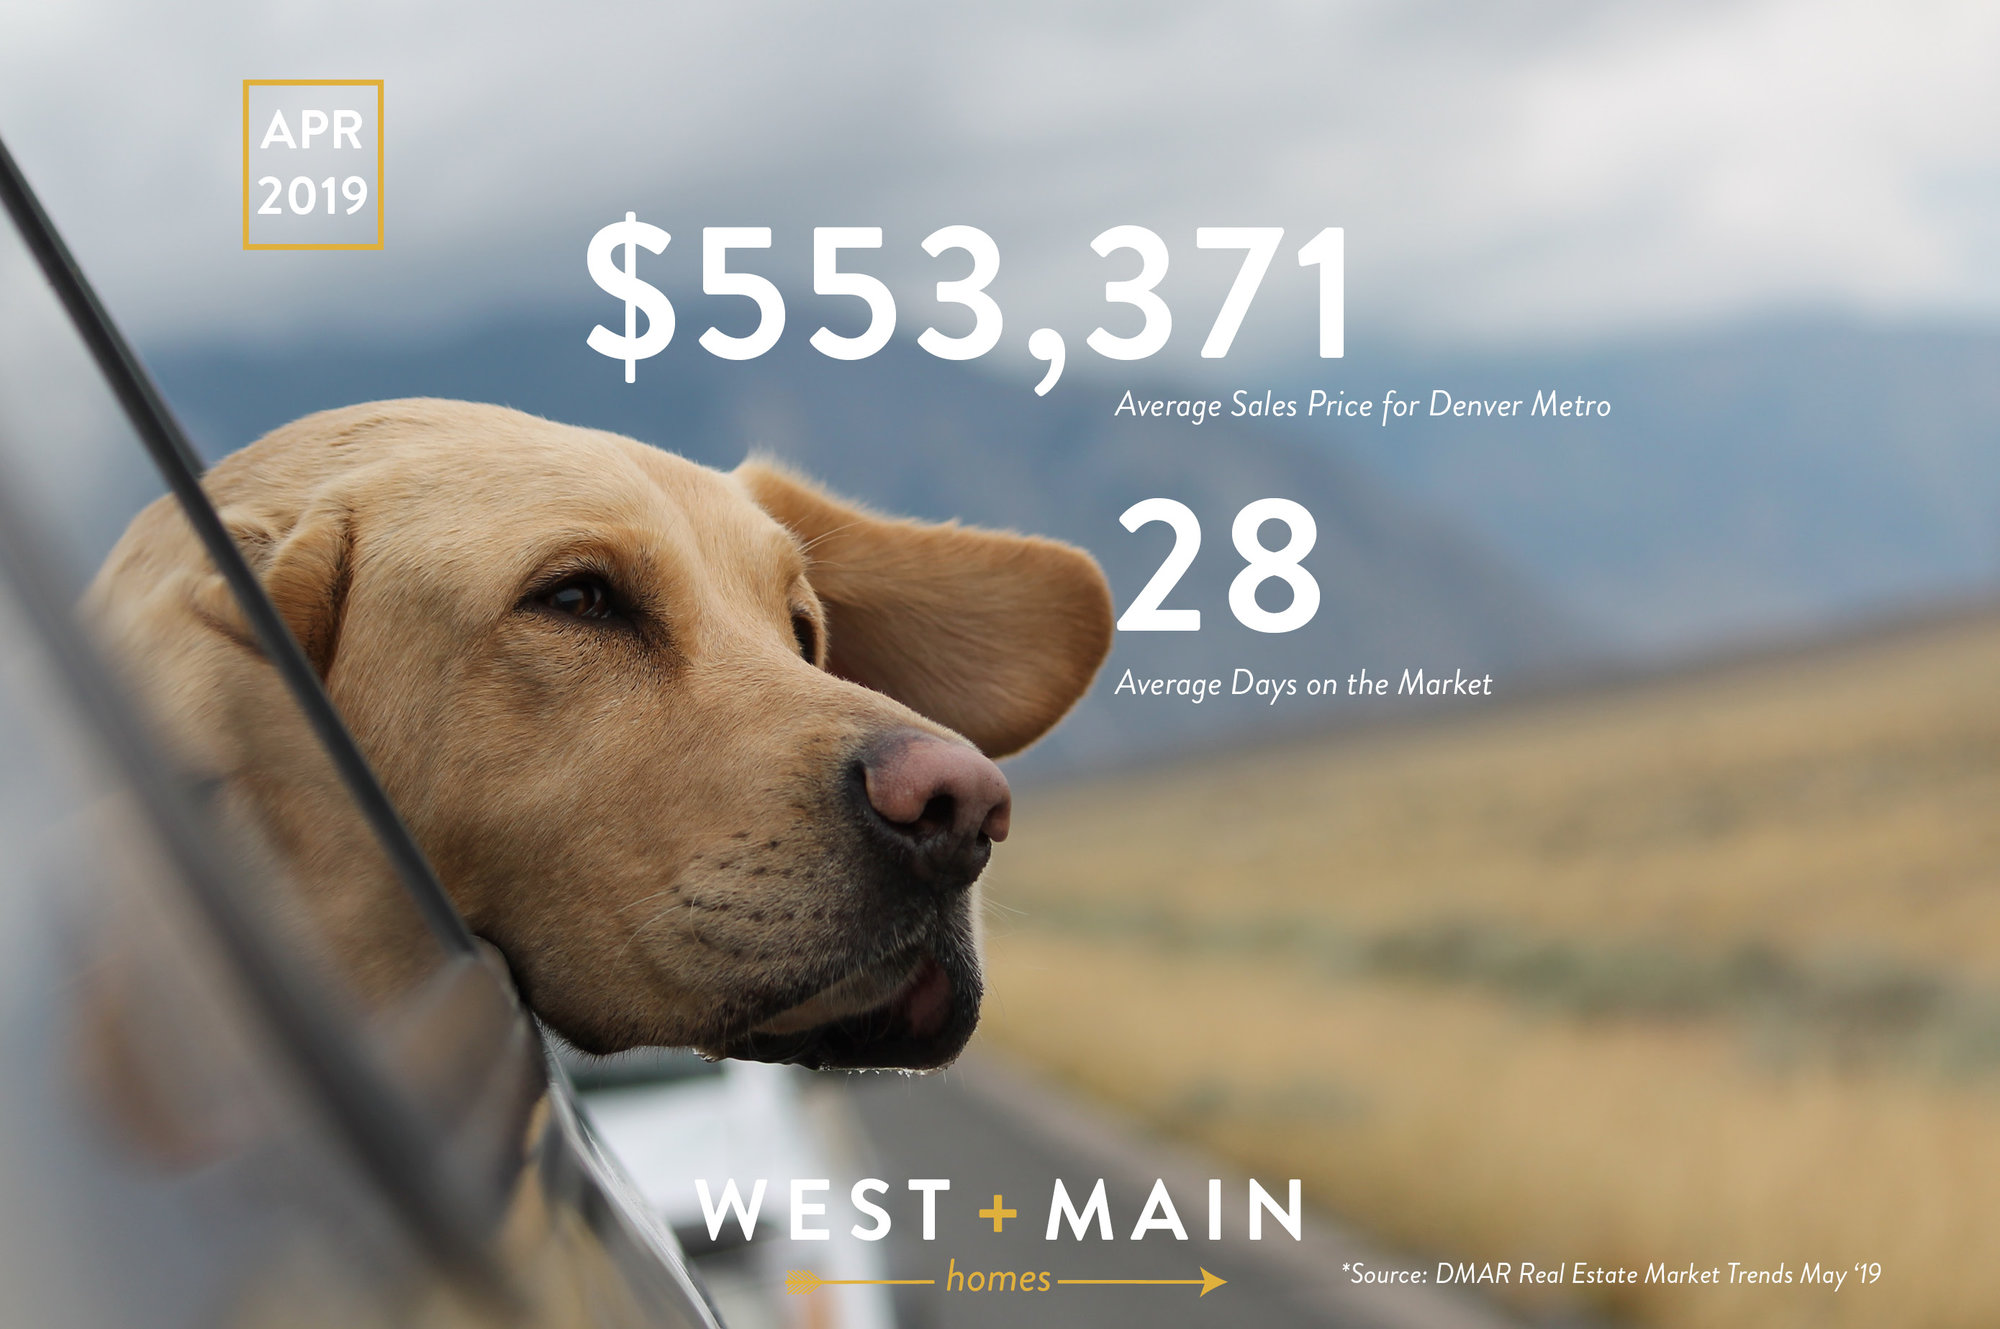 COLORADO'S REAL ESTATE MARKET REPORT - STATS FROM APRIL 2019